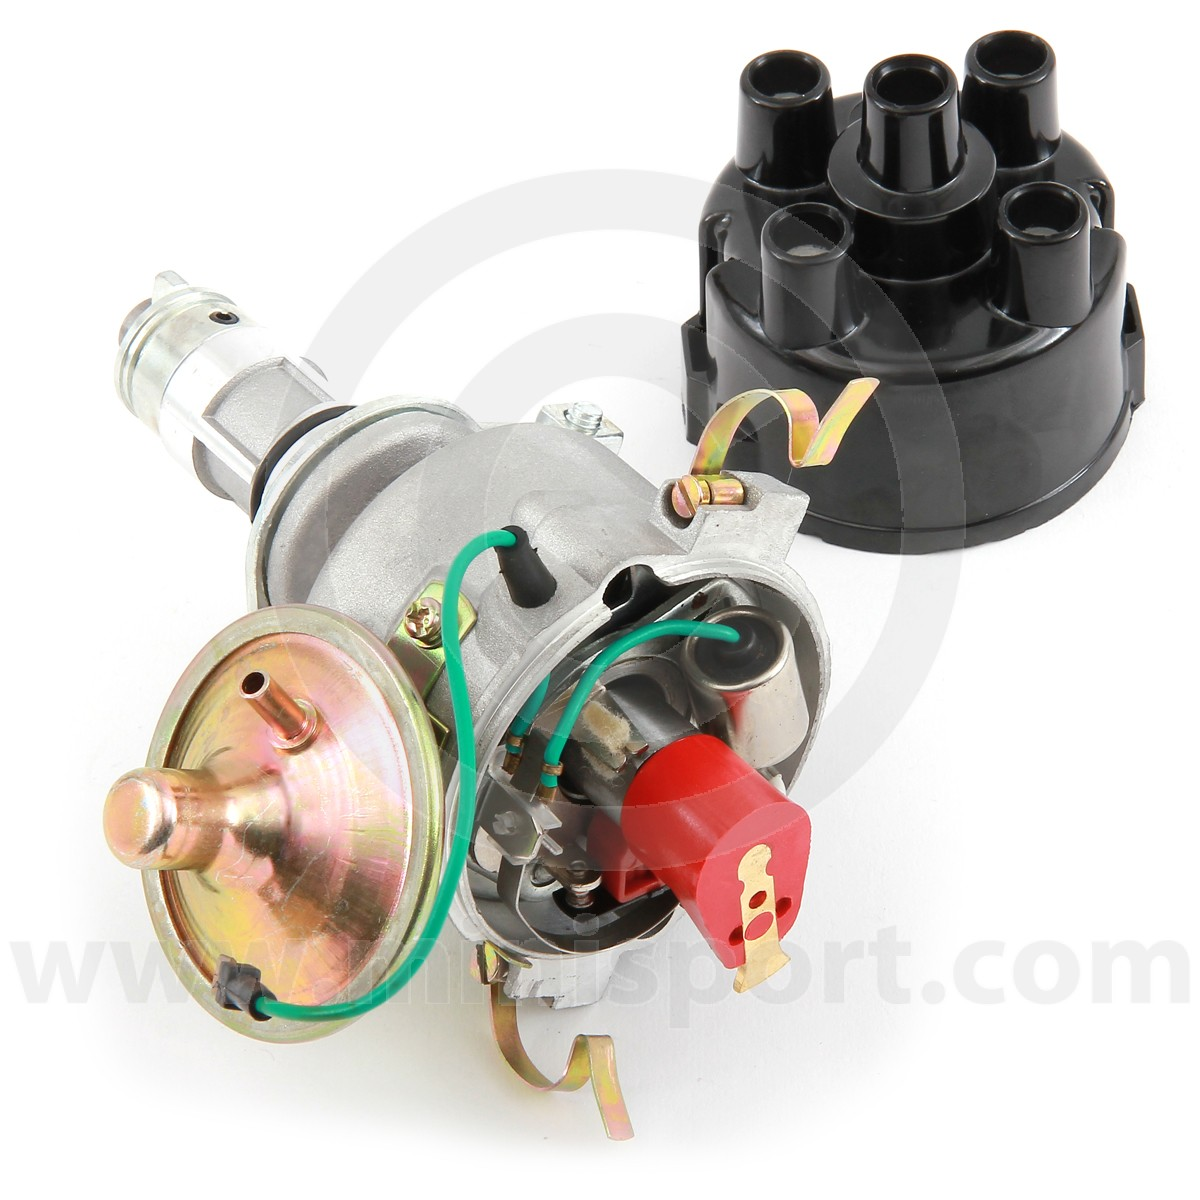 41570ms Mini 45d4 Distributor Austin Wiring Diagram Lucas Type With Points Ignition For Classic